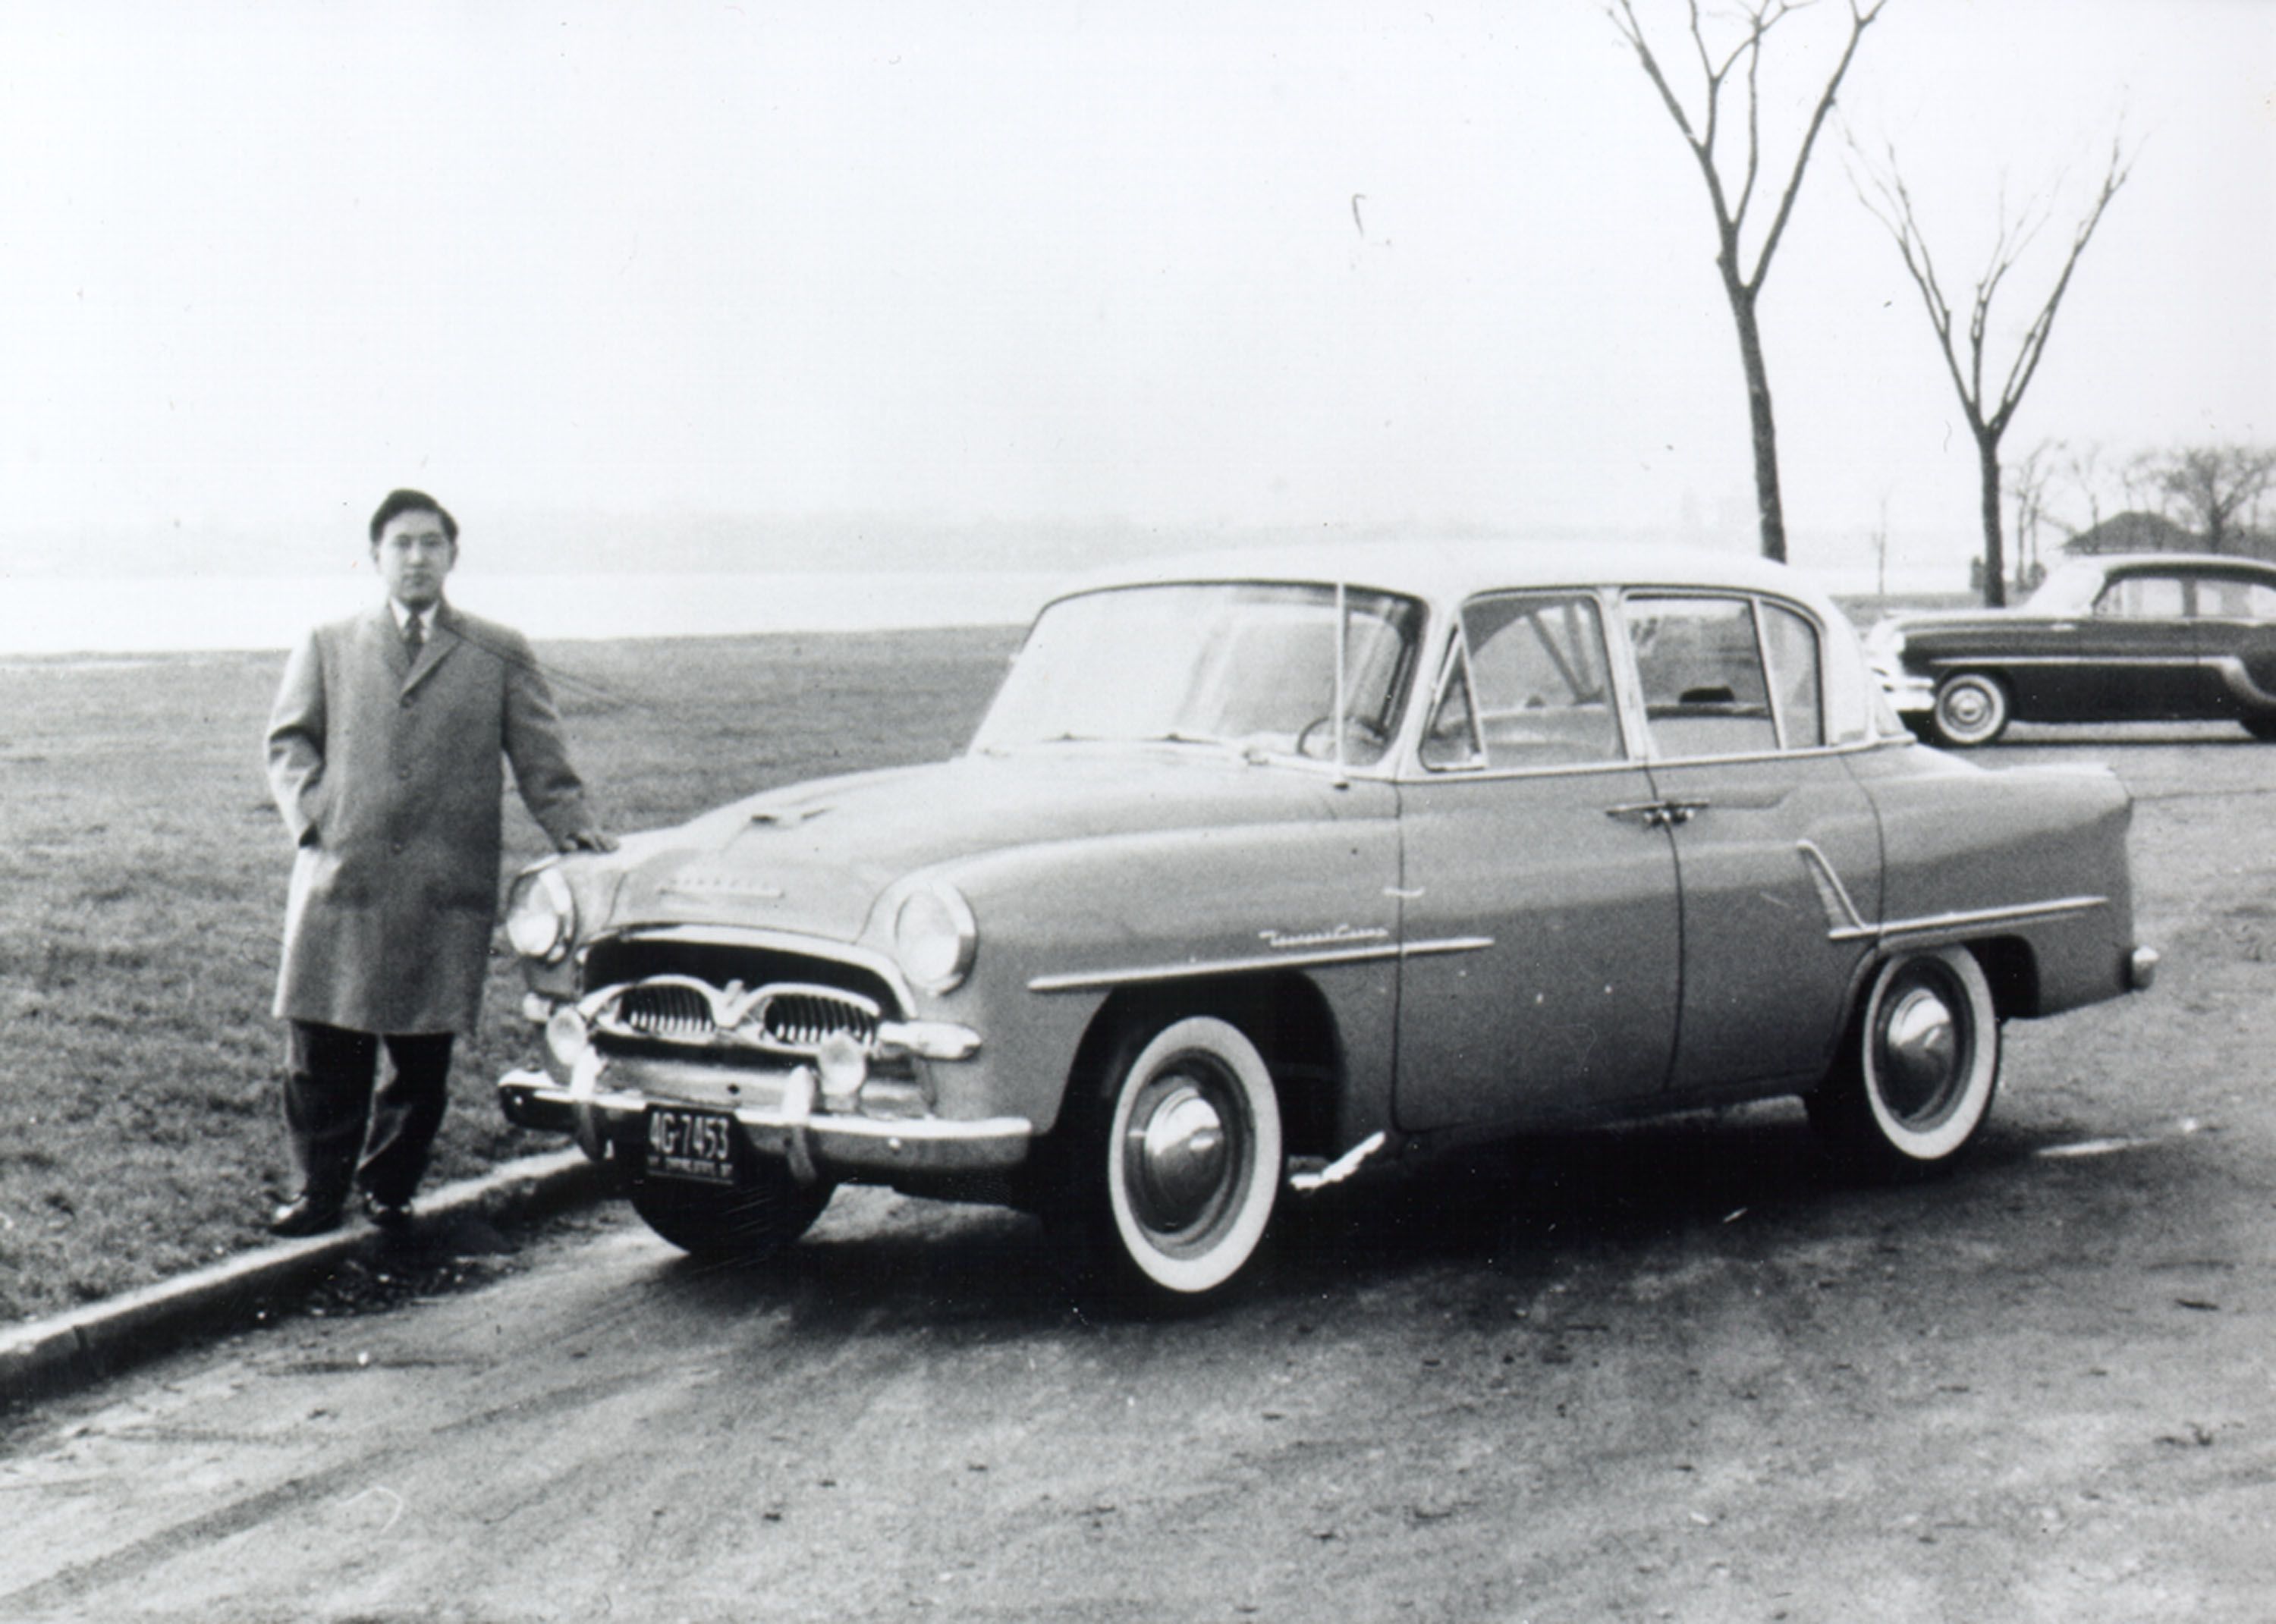 1957 Toyopet Crown Cars For Sale Philippines New Toyota Truck Classic Cars